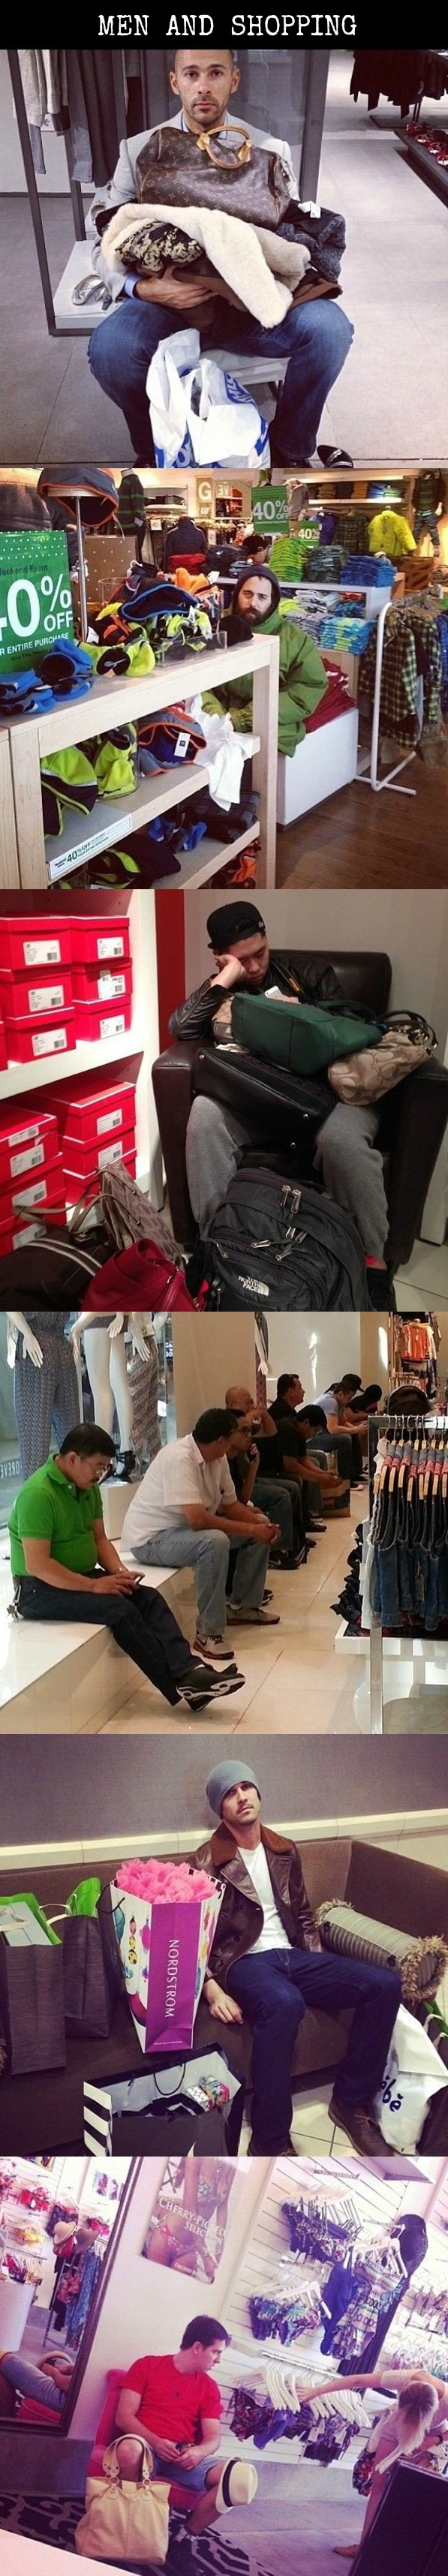 funny pics, men shopping